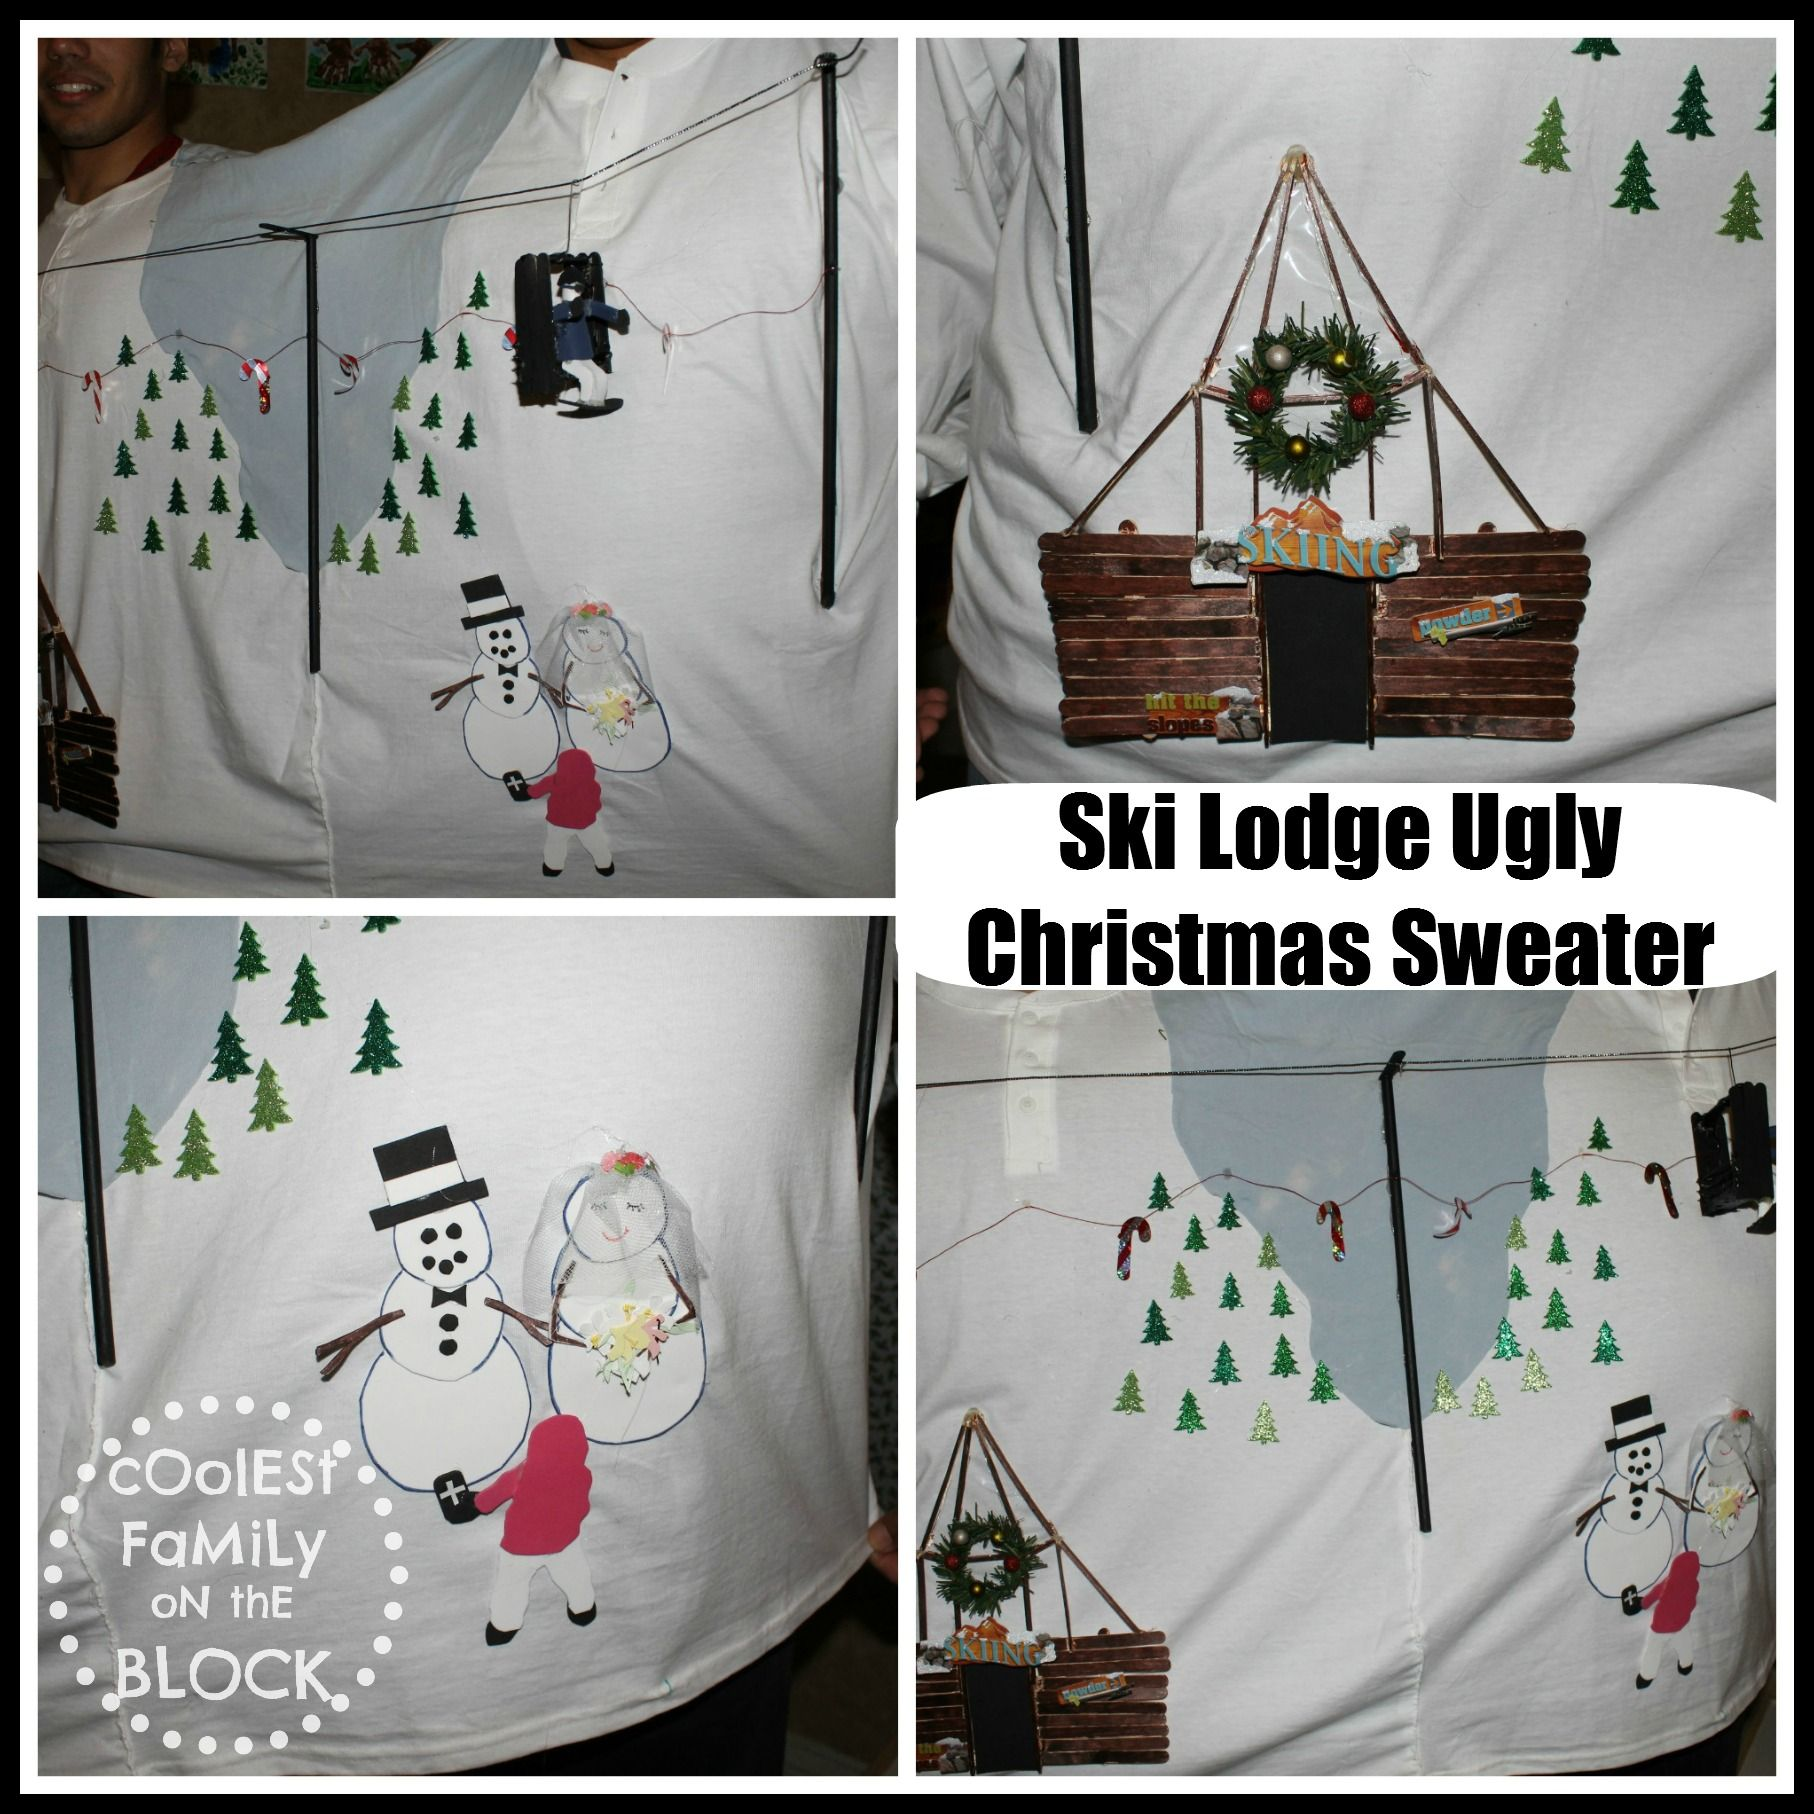 Ski Lodge Ugly Christmas Sweater (Coolest Family On The Block)